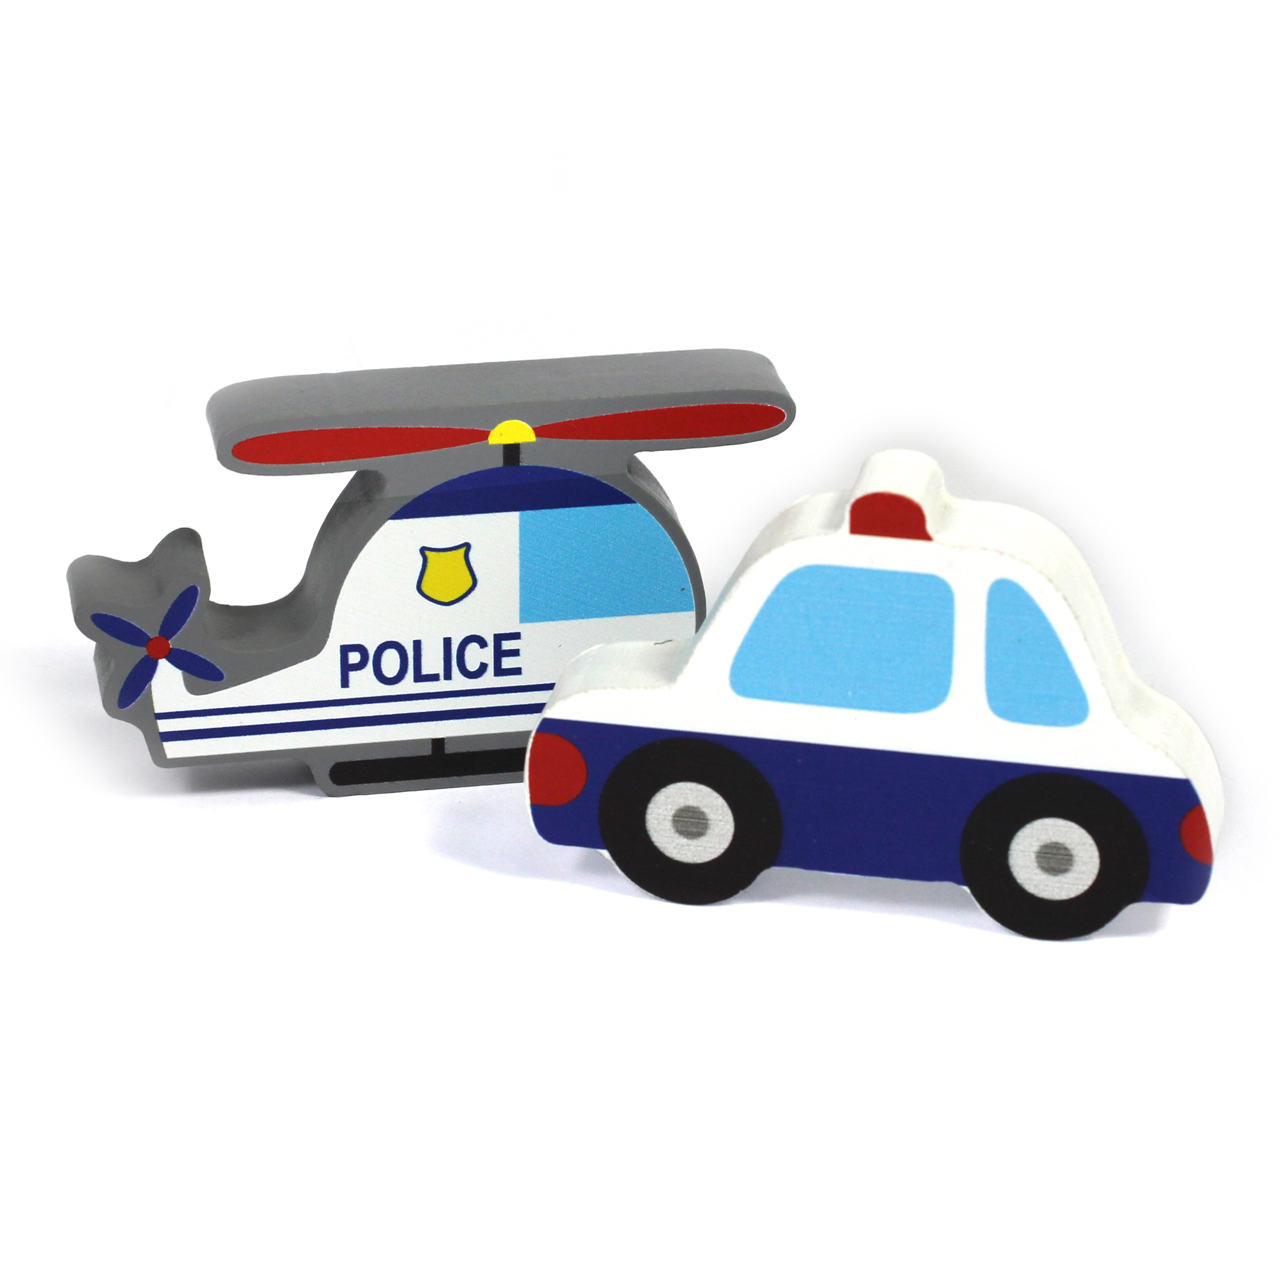 2Pc 15mm Thick Police Character Group